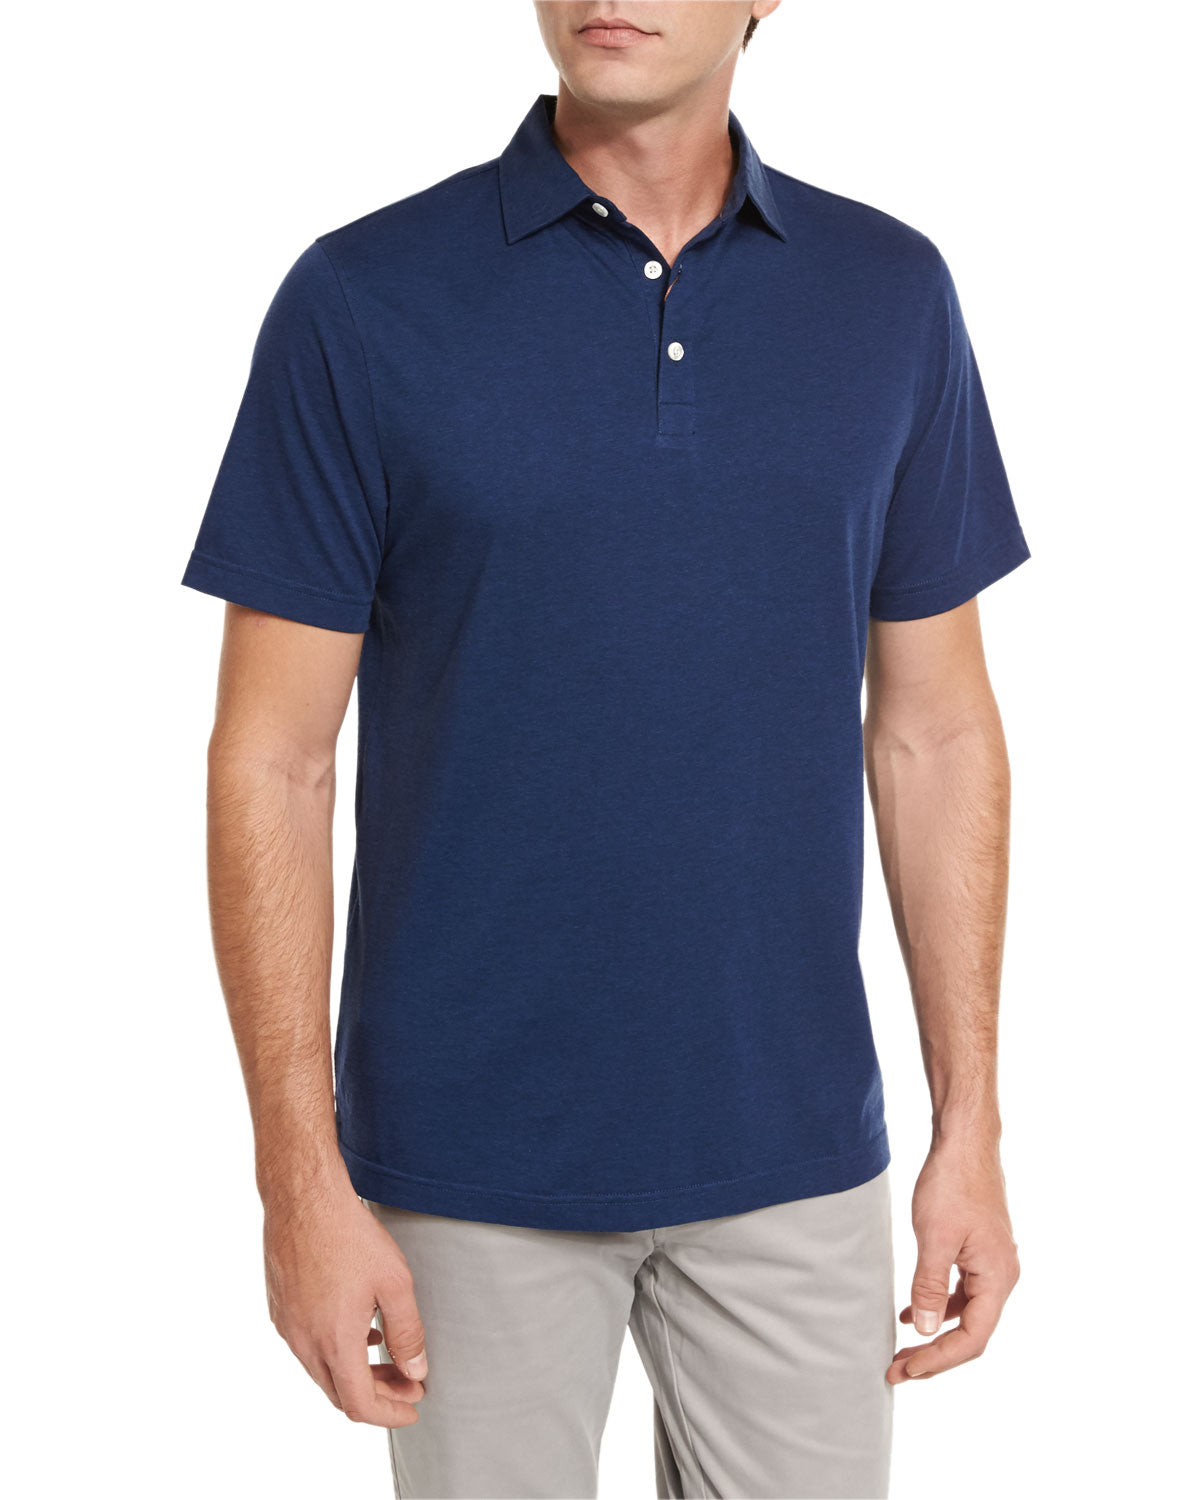 8a82efff7 Products - Patriot Navy